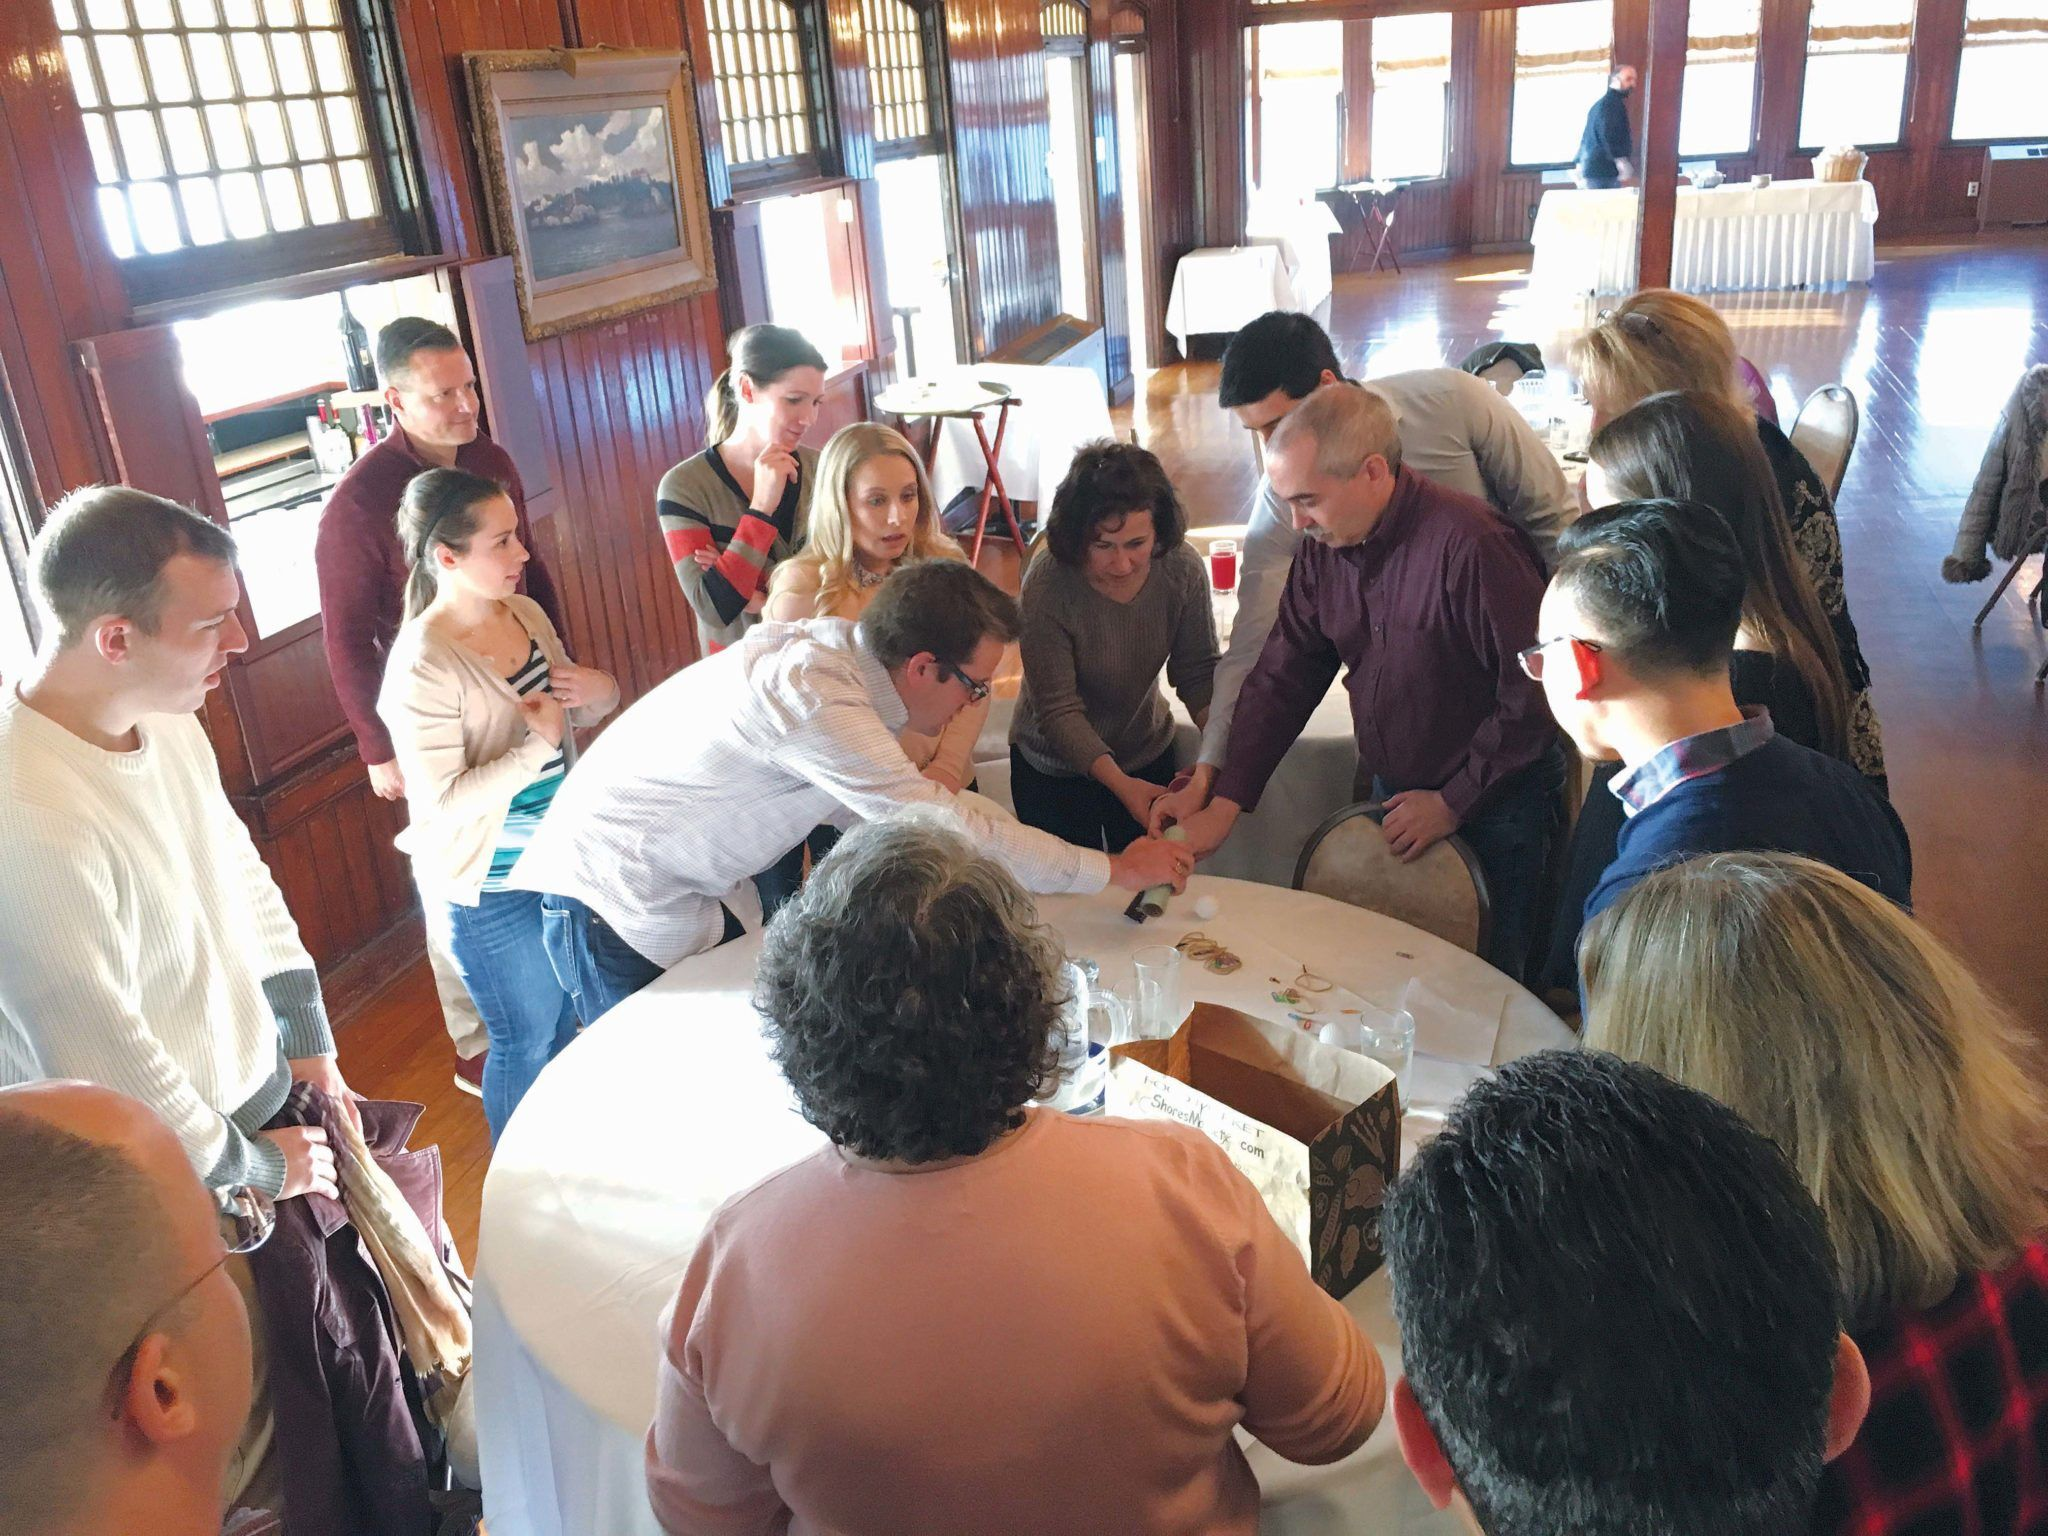 BUILDING A BETTER FIRM: Sansiveri, Kimball & Co. employees take part in team-building exercises during the company's annual all-day retreat at the Squantum Club in East Providence. / COURTESY SANSIVERI, KIMBALL & CO.